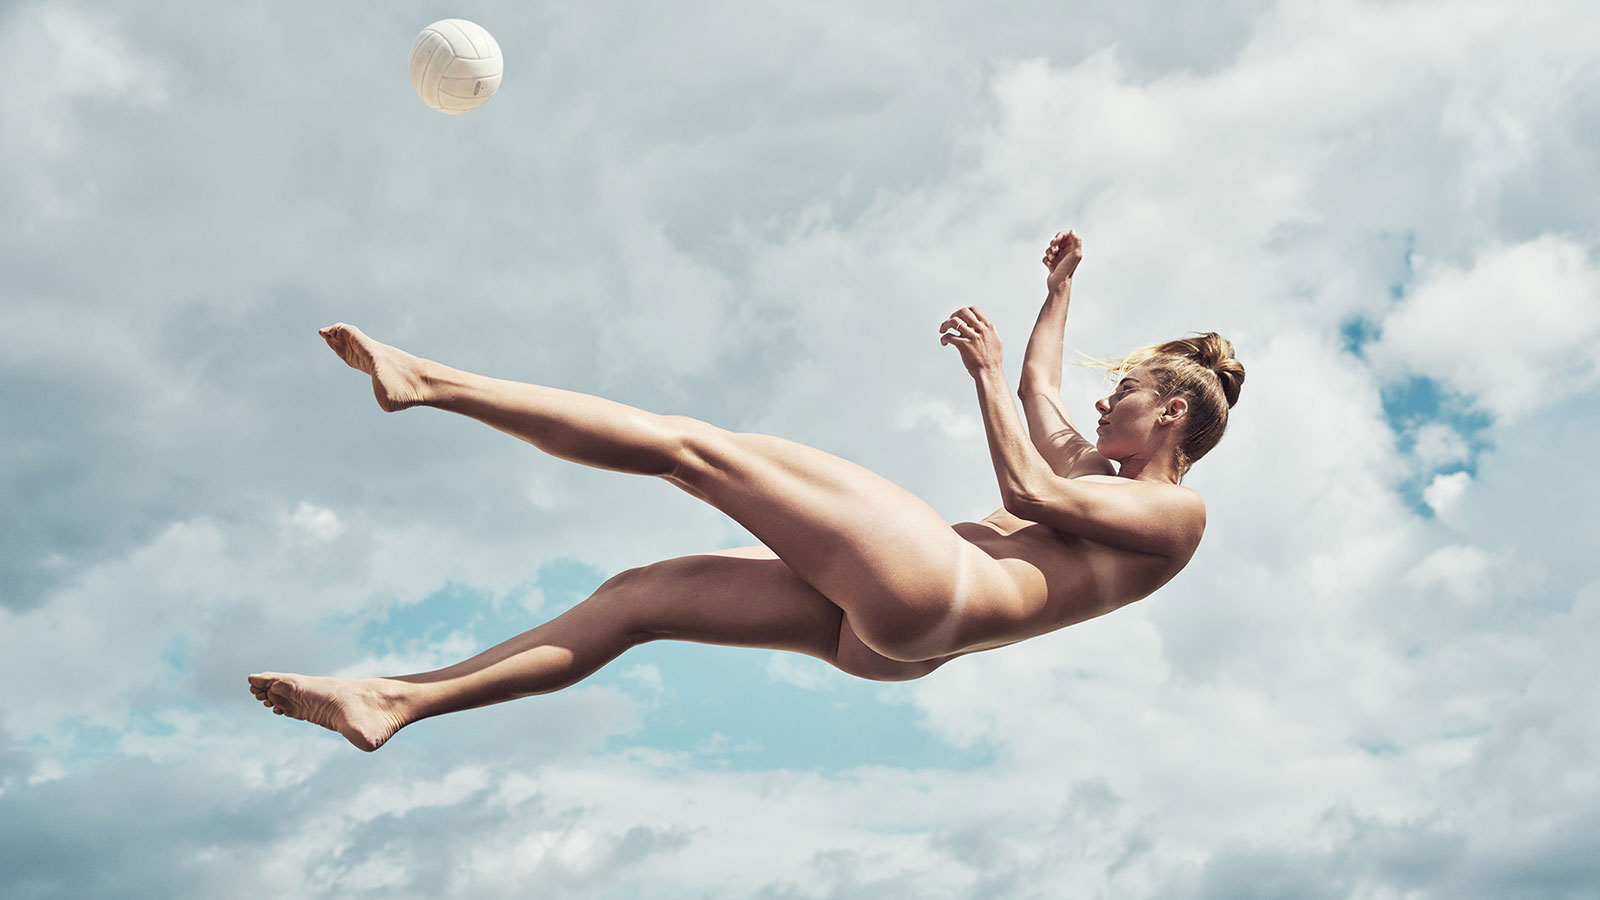 April Ross, Beach Volleyball, featured in the Body Issue 2016: Fully Exposed on ESPN the Magazine